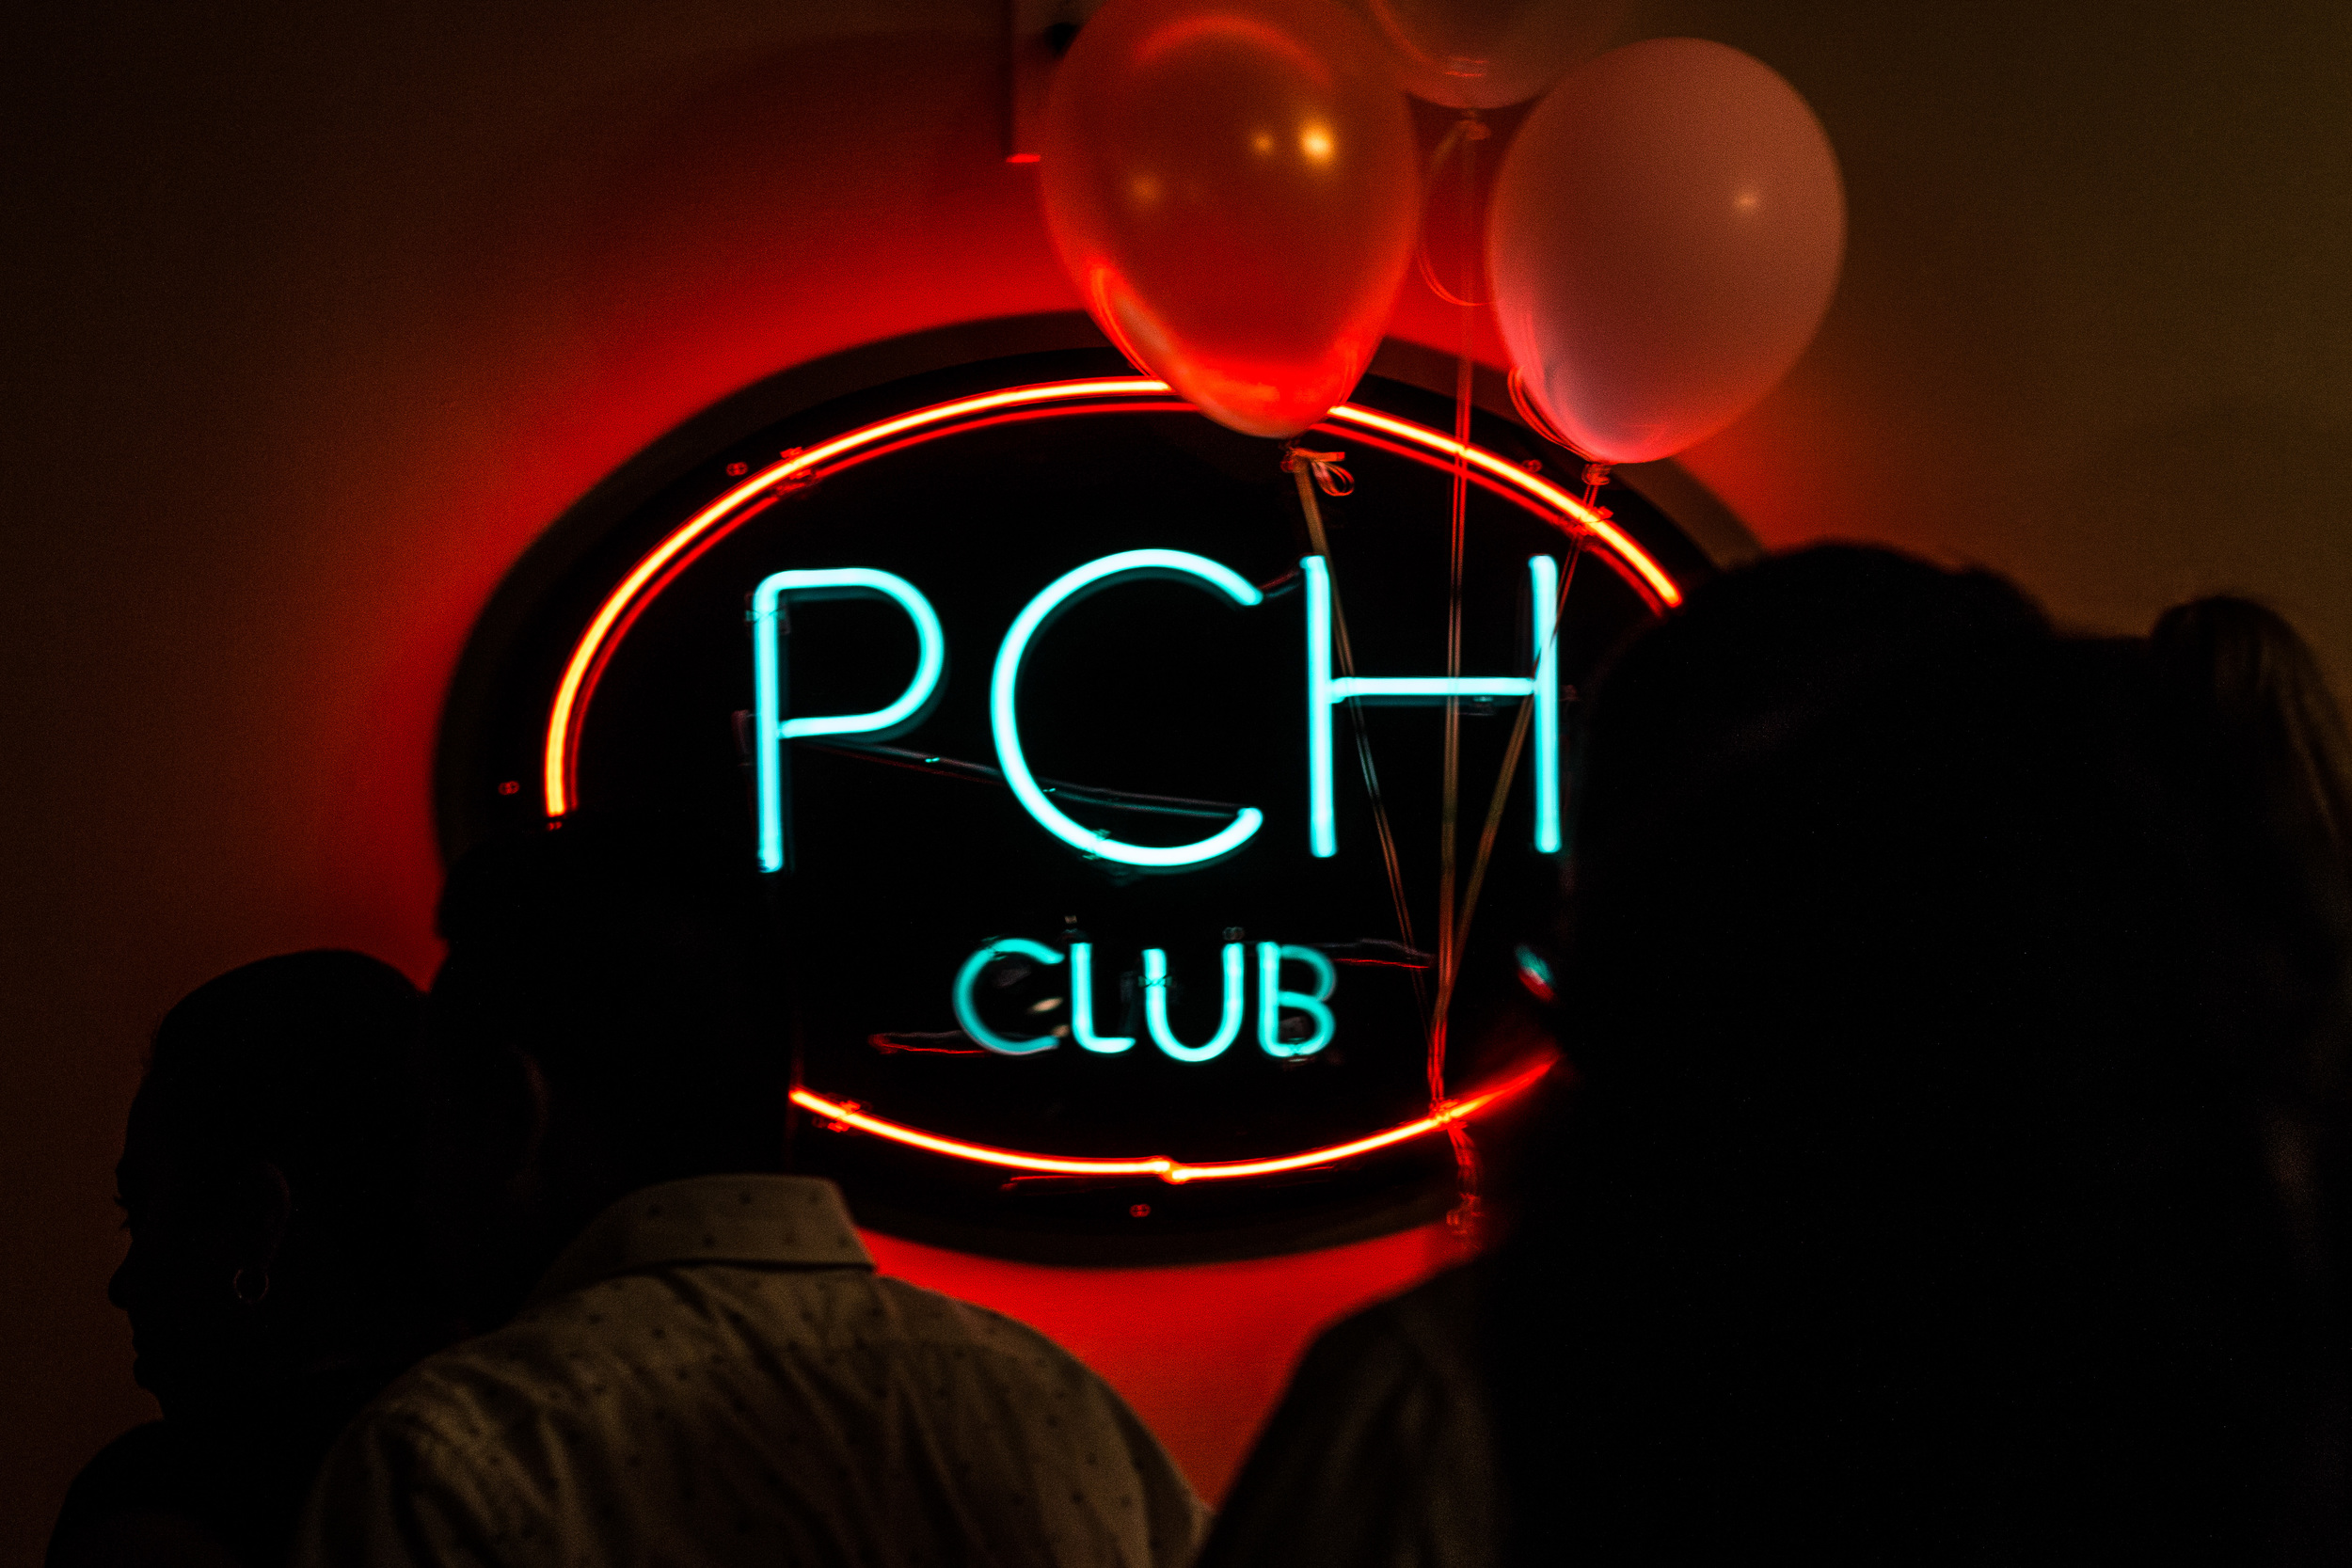 PCH CLUB in Long Beach, CA celebrates its 10 year anniversary of weekly salsa nights. This night, there are two rooms for dancing, differentiated by dance style: rapid and fun salsa, or sensual and slow bachata.